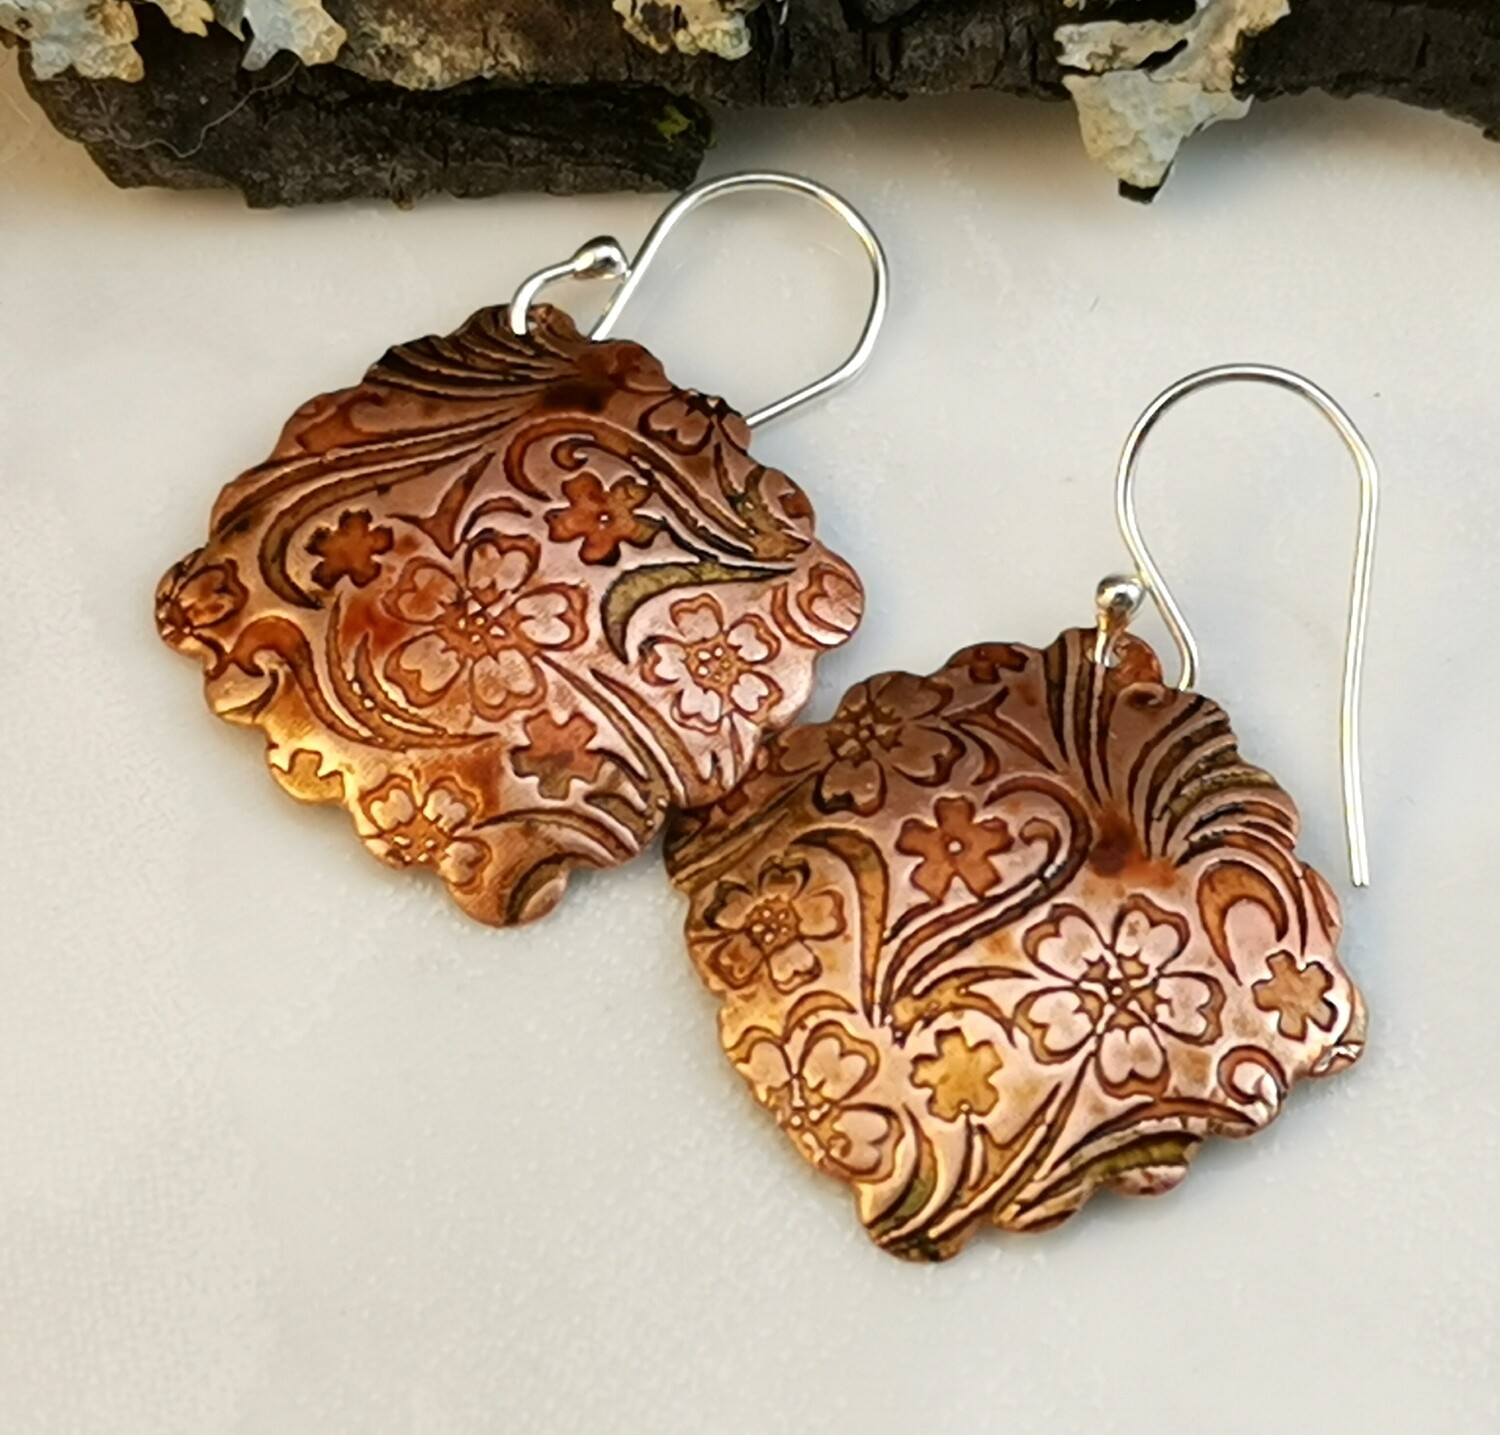 Hand Painted Tiny Flower Patterned Ruffled Copper Earrings with Hues of Green and Golded Orange on Sterling Silver Ear Wires